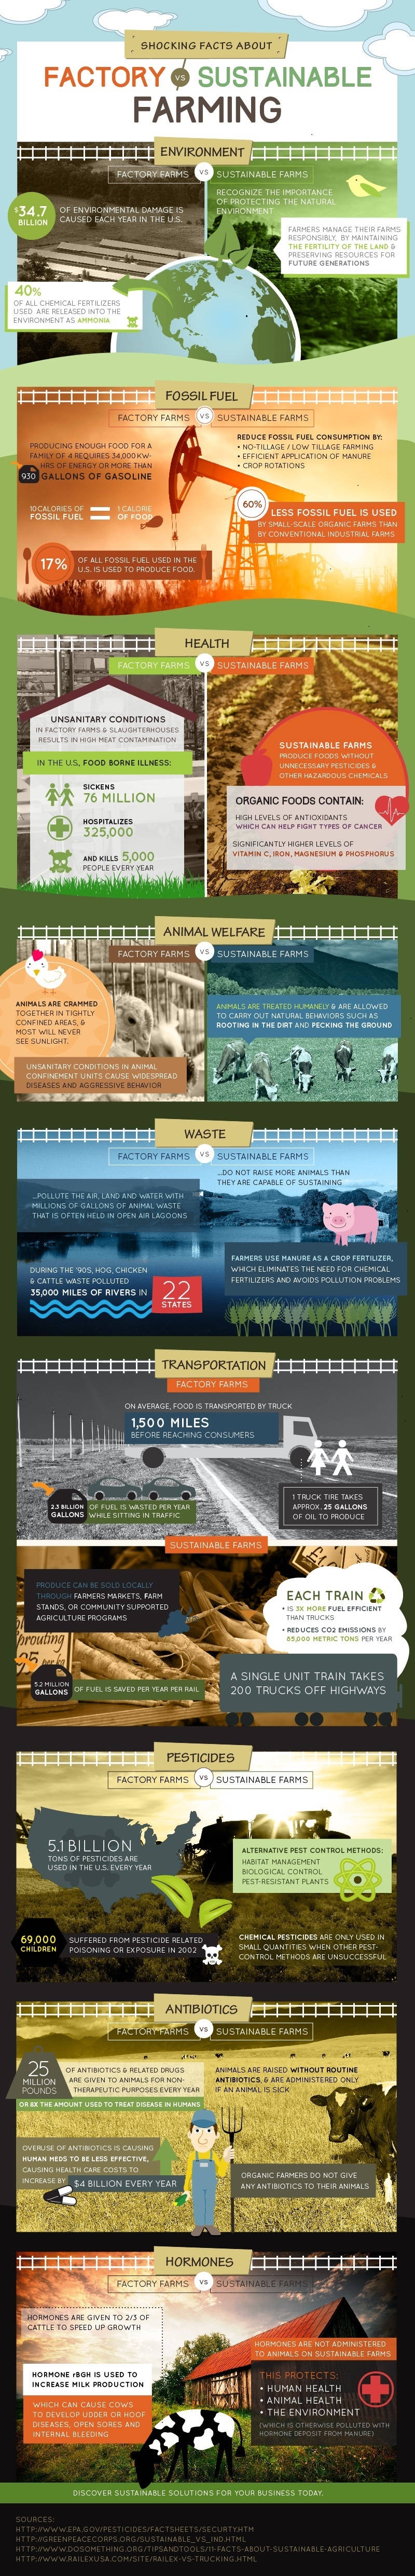 Shocking Facts About Factory Farming VS Sustainable Farming